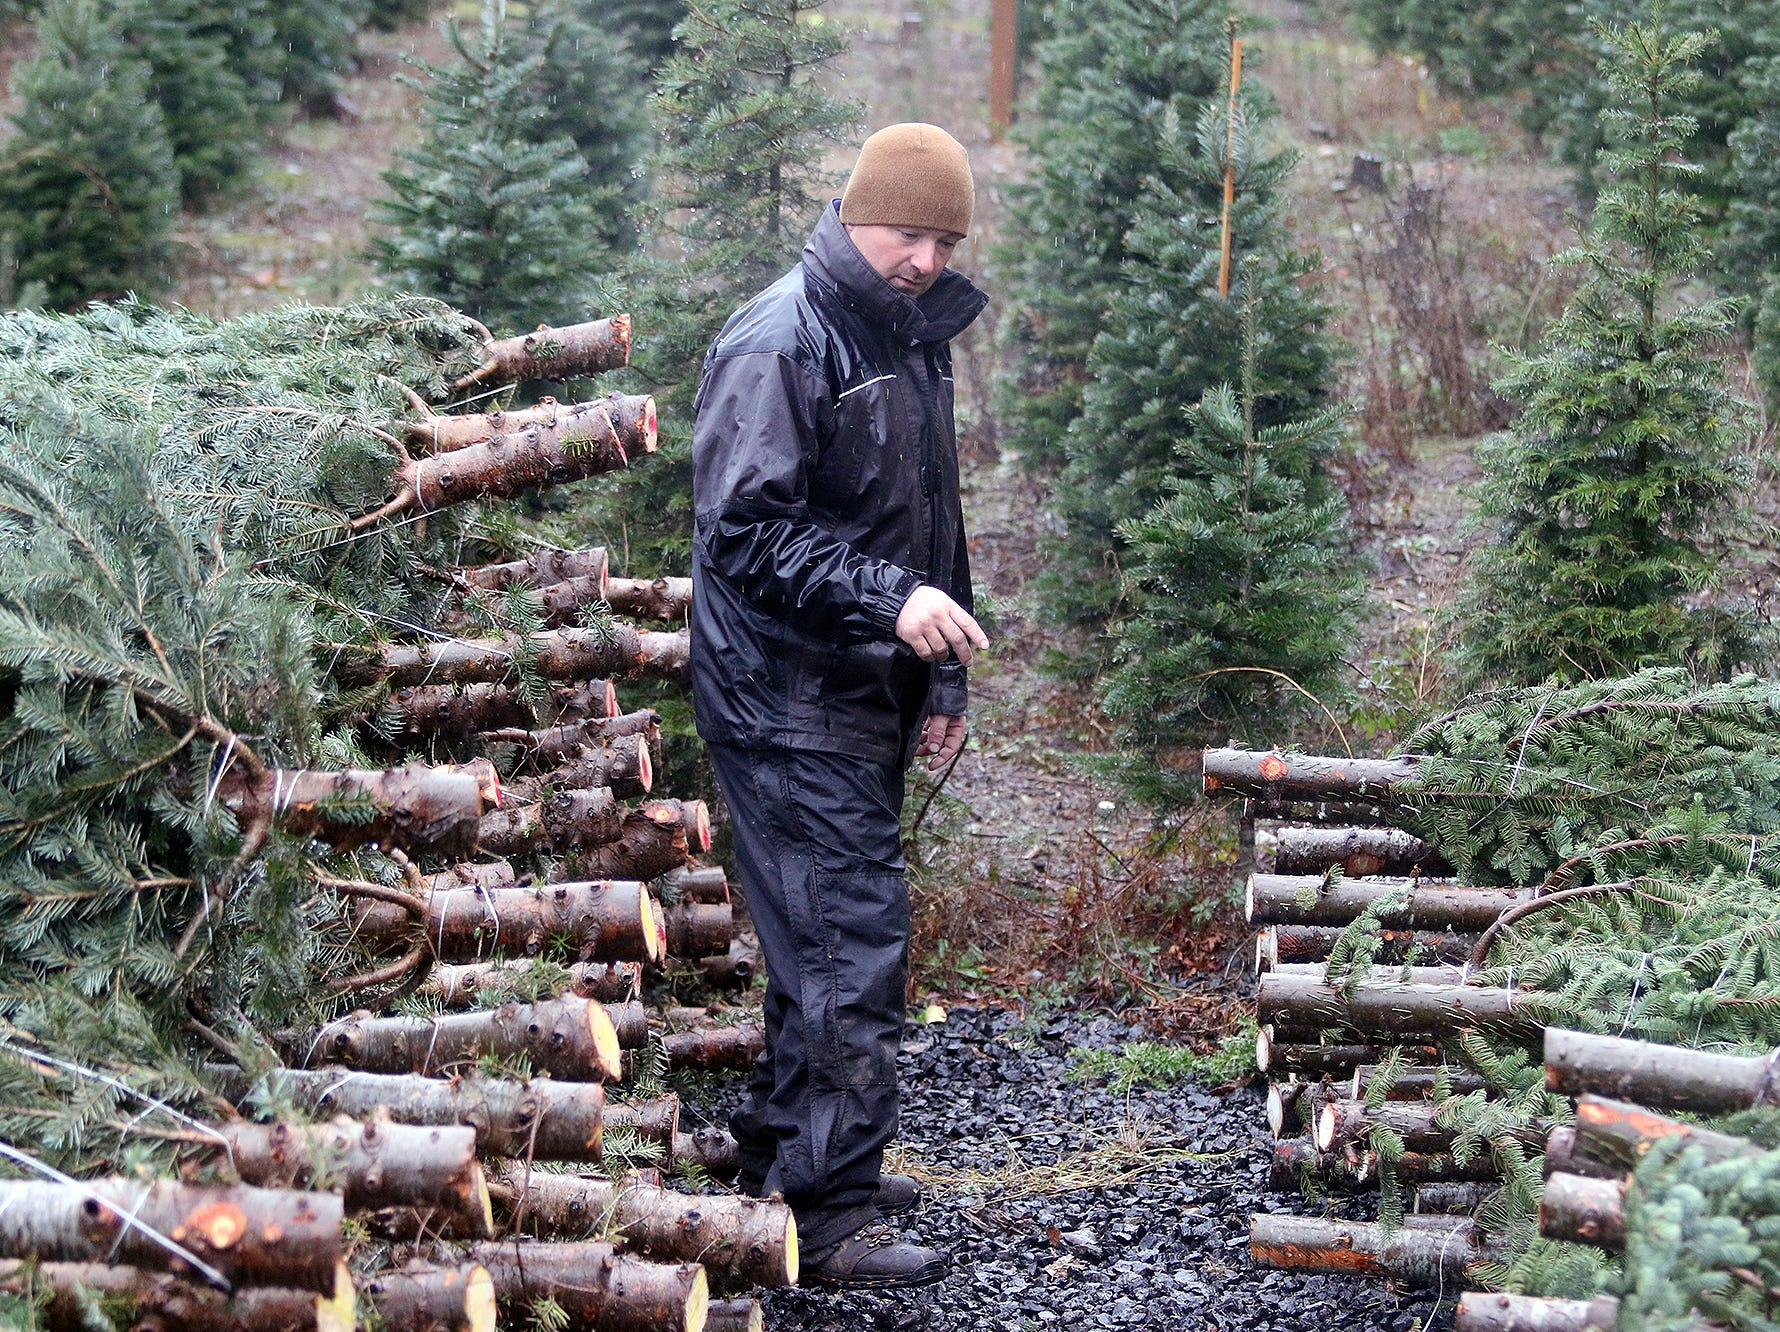 Josh Olmsted counts cut Christmas trees on Wednesday, November, 21, 2018 at the tree farm in Poulsbo. The family has run a tree business for 50 years. Friday, November 23, is the opening day for the Poulsbo U-cut tree farm.